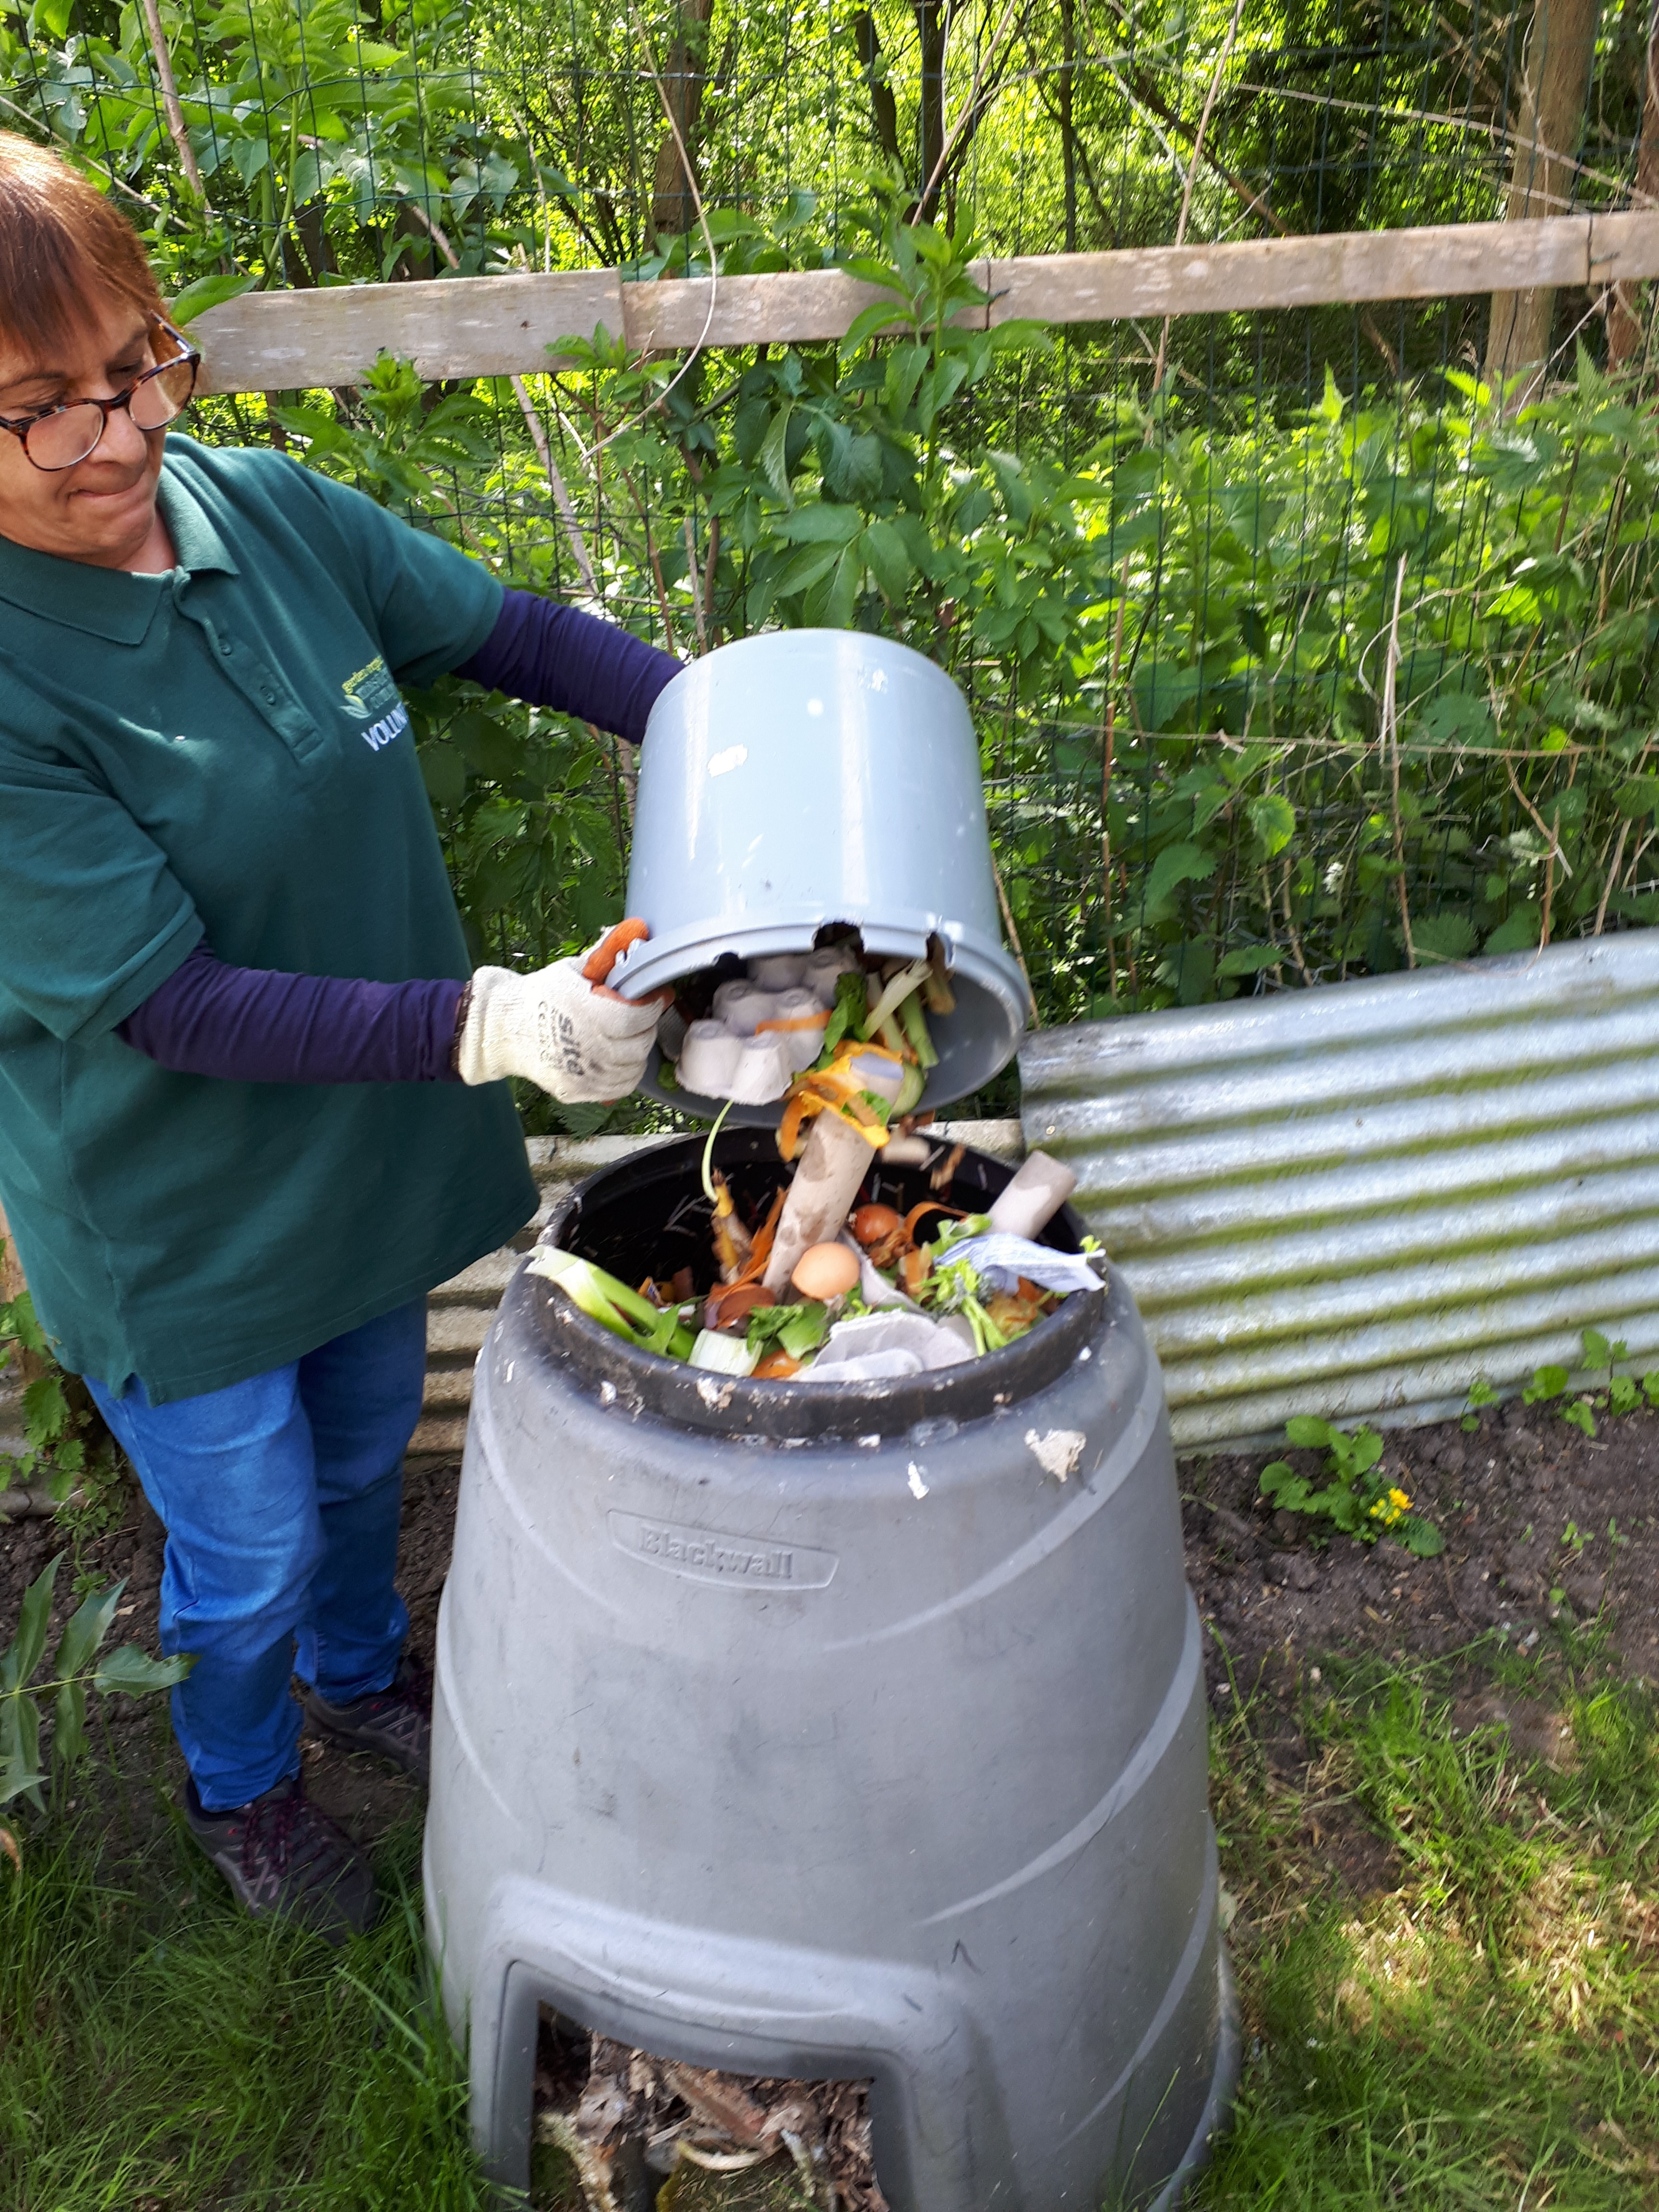 Photograph of Master Composter Anne Wiltshire using her home compost bin